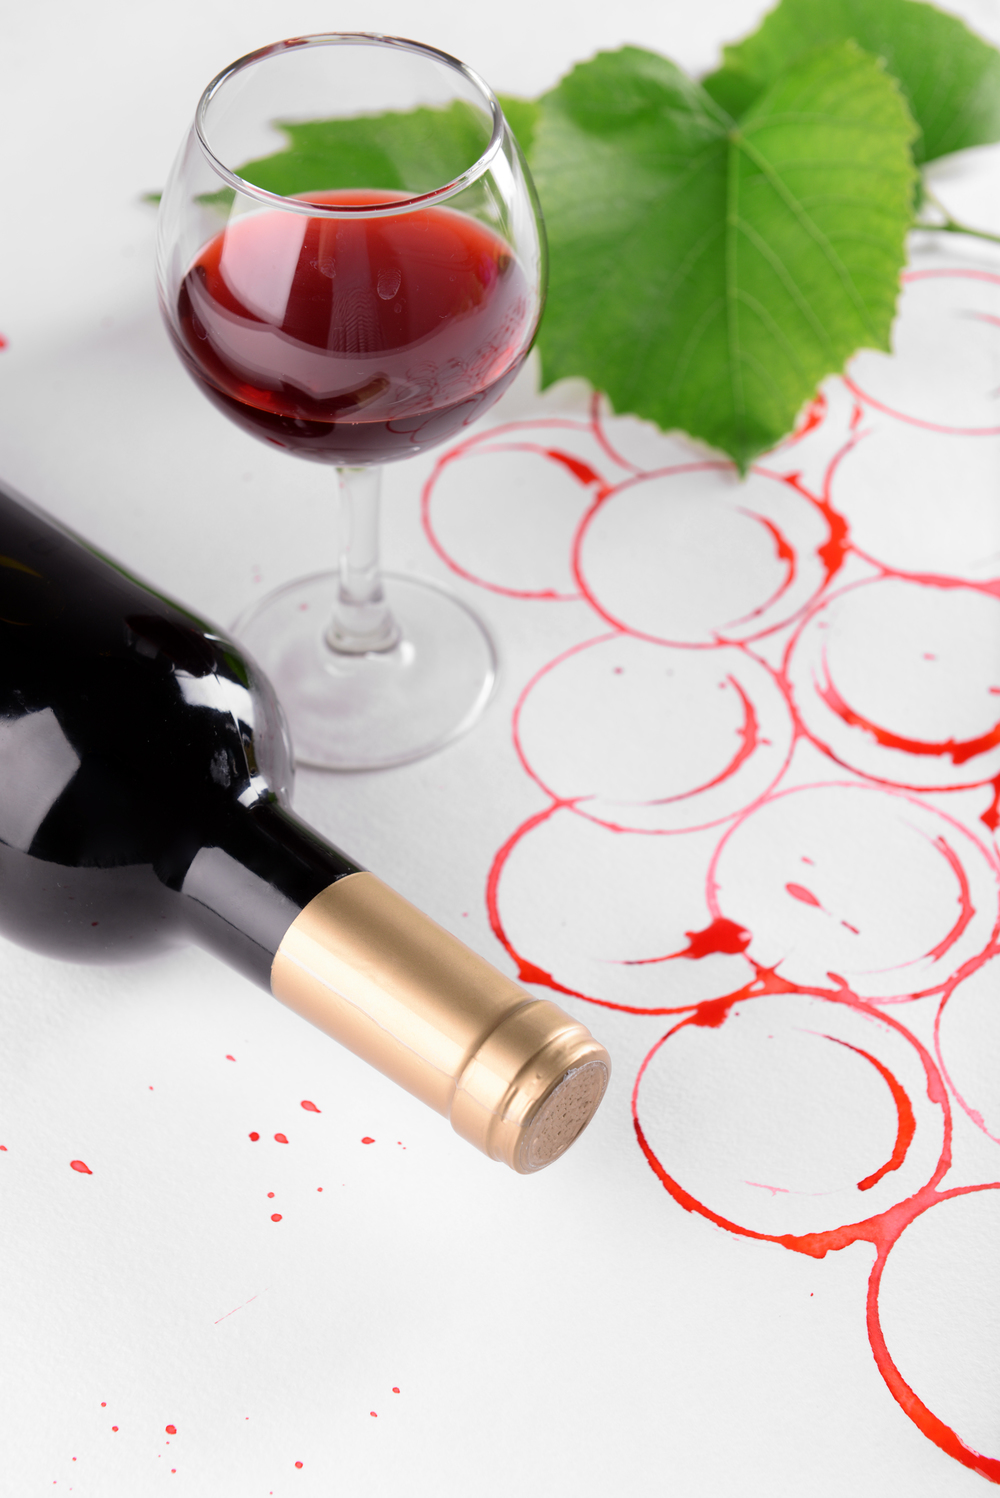 bigstock-Grapes-made-with-wine-cork-and-101571191.jpg